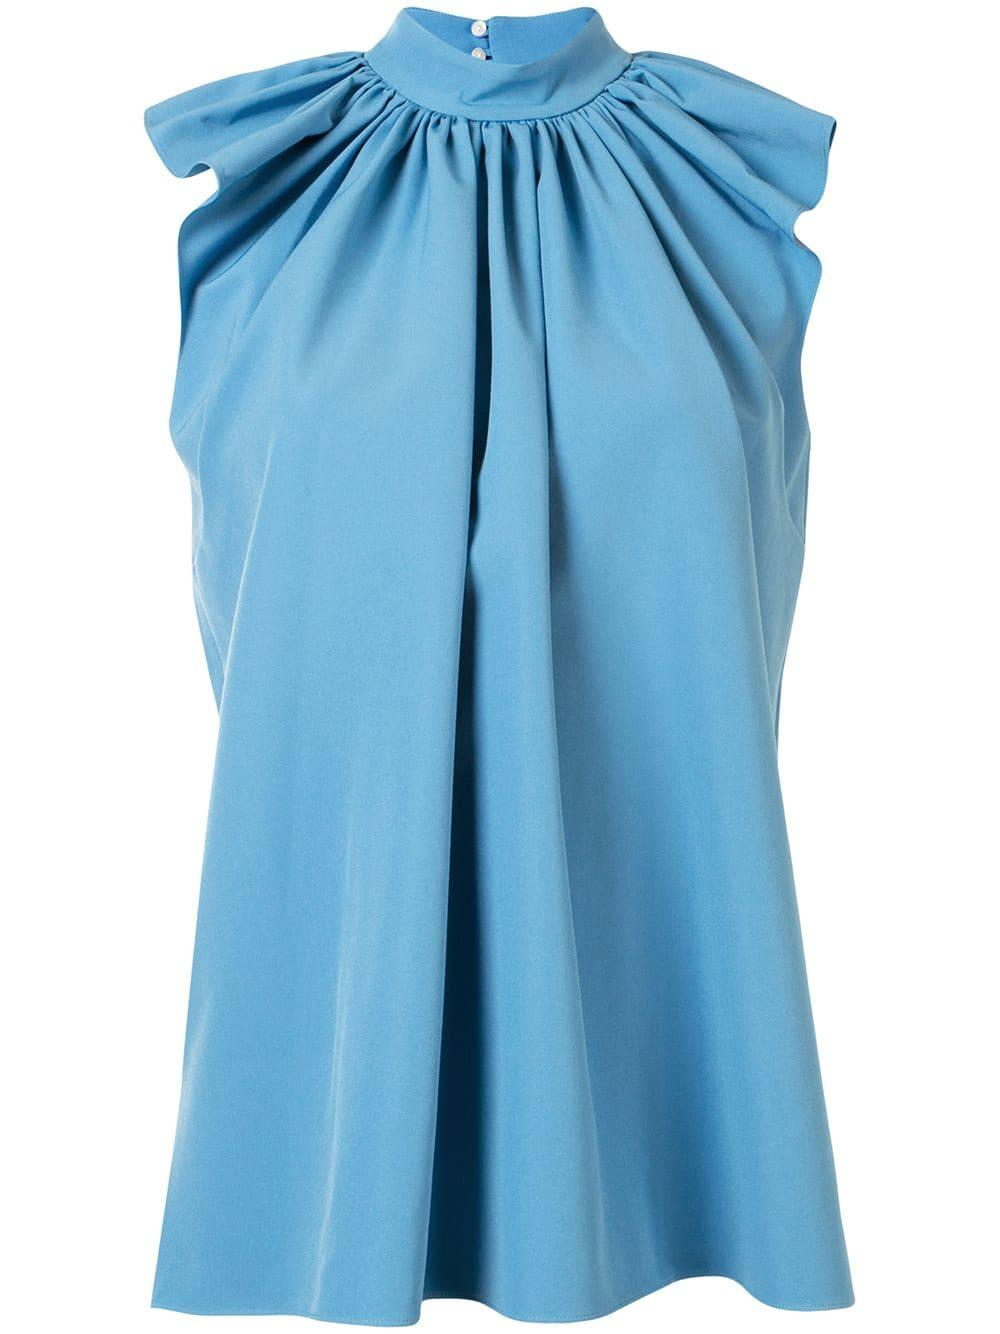 Sleeveless Ruched Shoulder Top Item # 2220WTP001164A